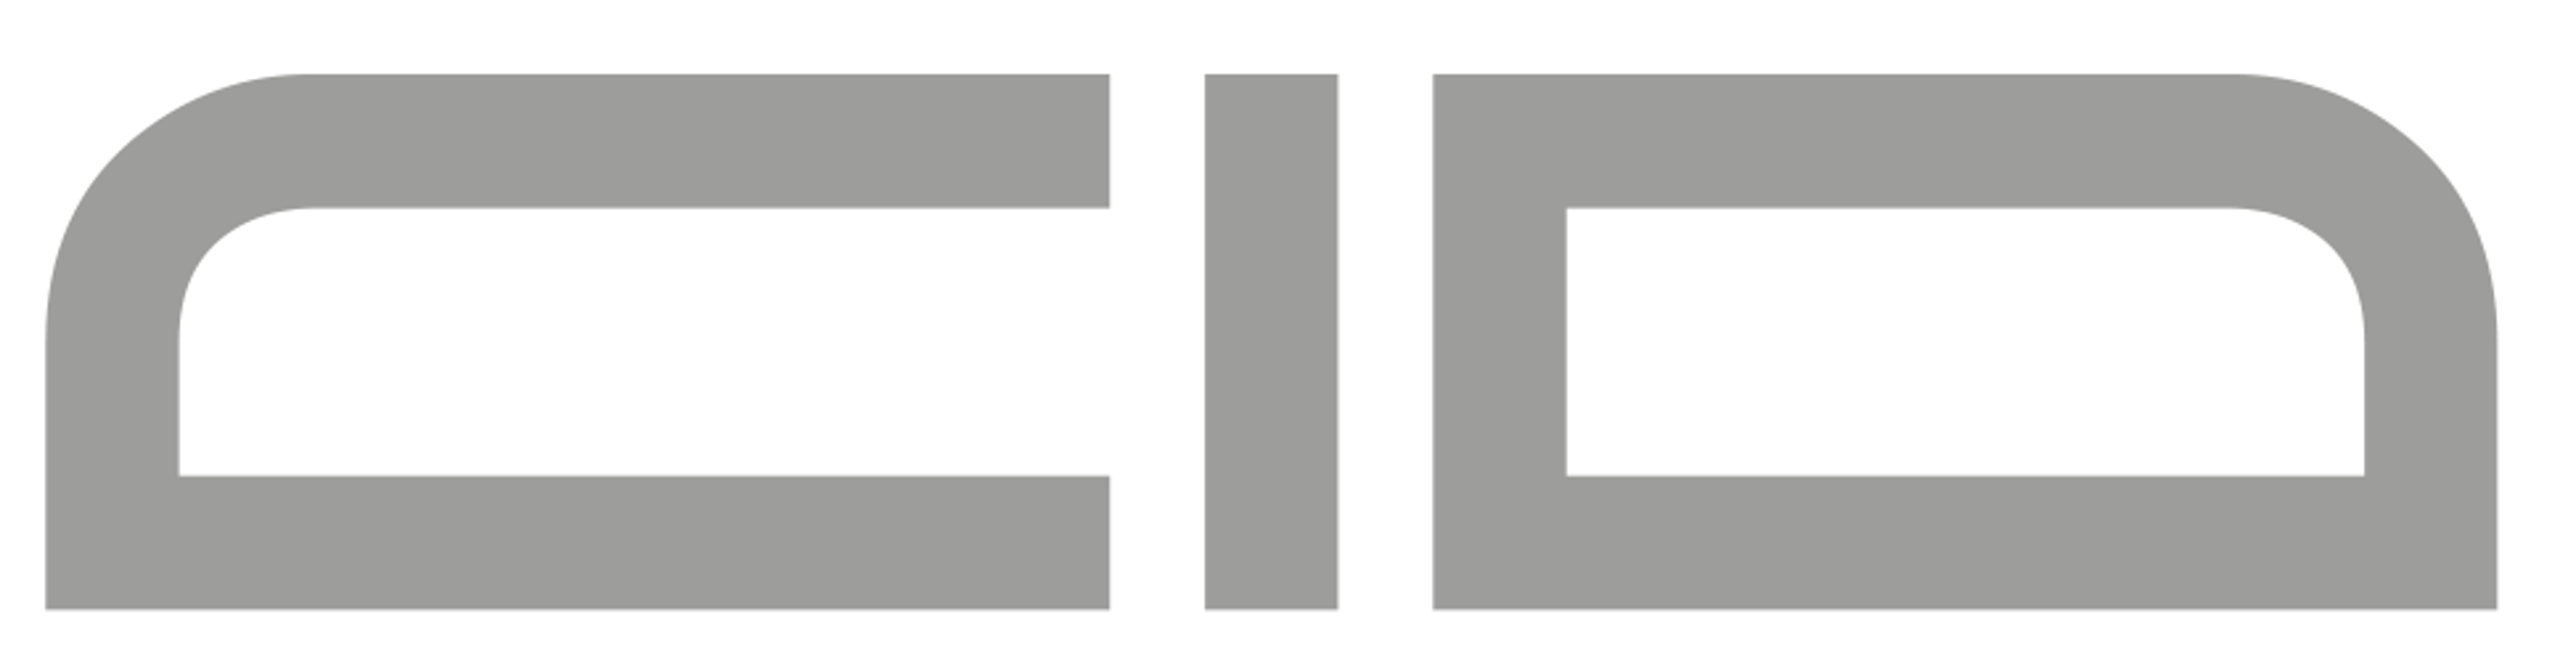 Bild zu CID Customized Interiors & Design Solutions GmbH in Wiesbaden